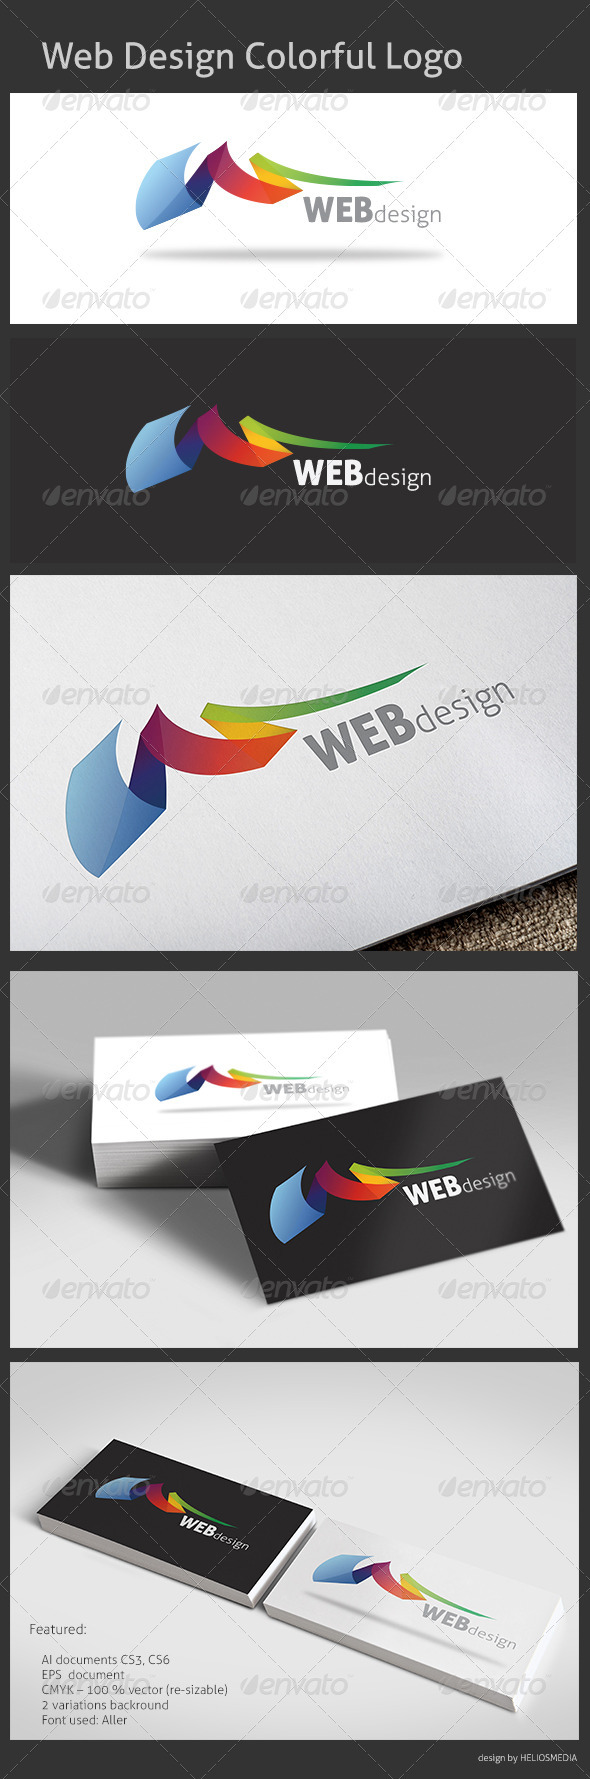 GraphicRiver Web Design Colorful Logo 3408493